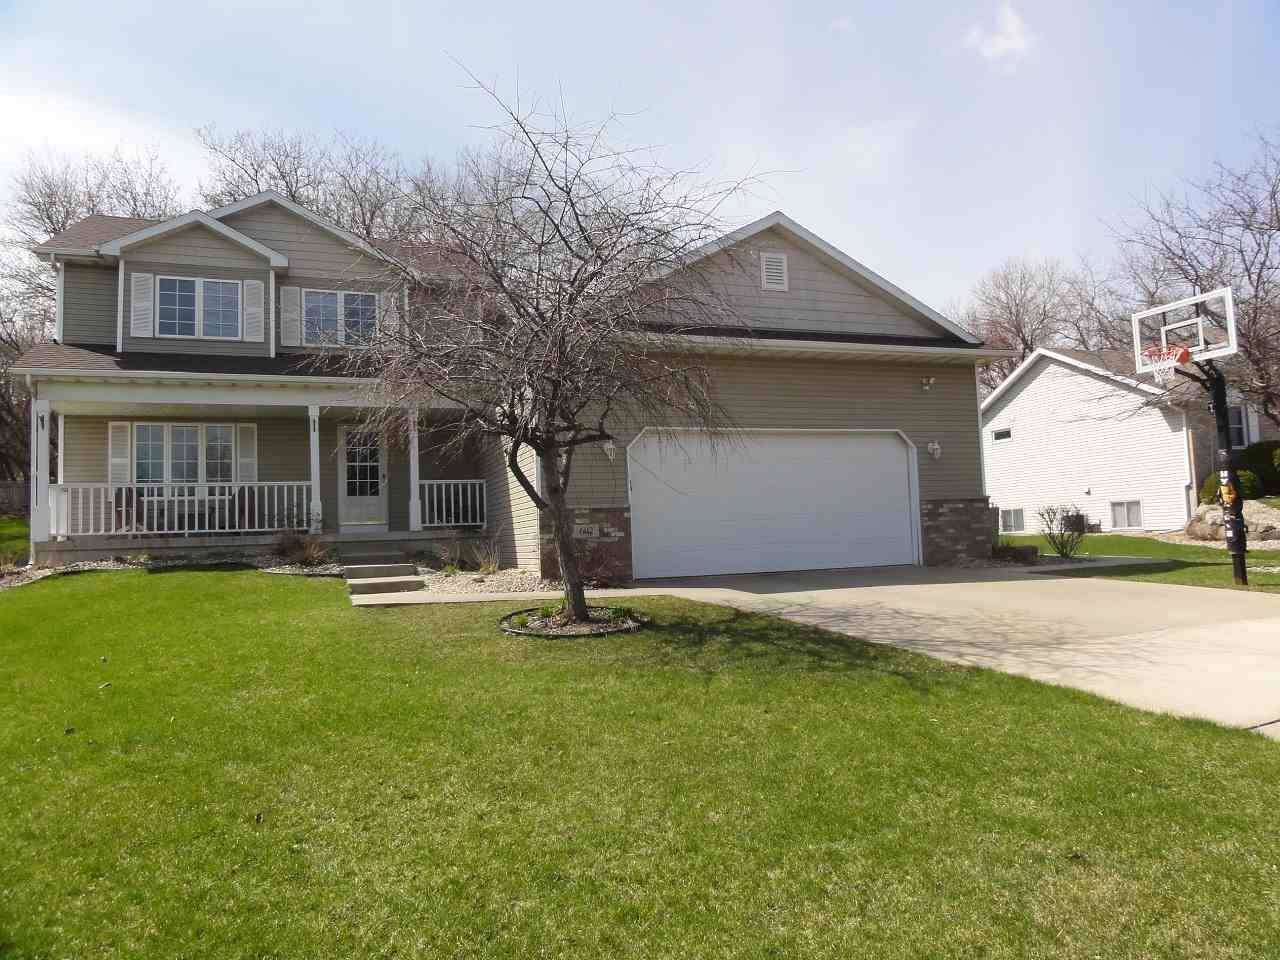 602 Meadow View Ln, DeForest, WI 53532 - #: 1881086